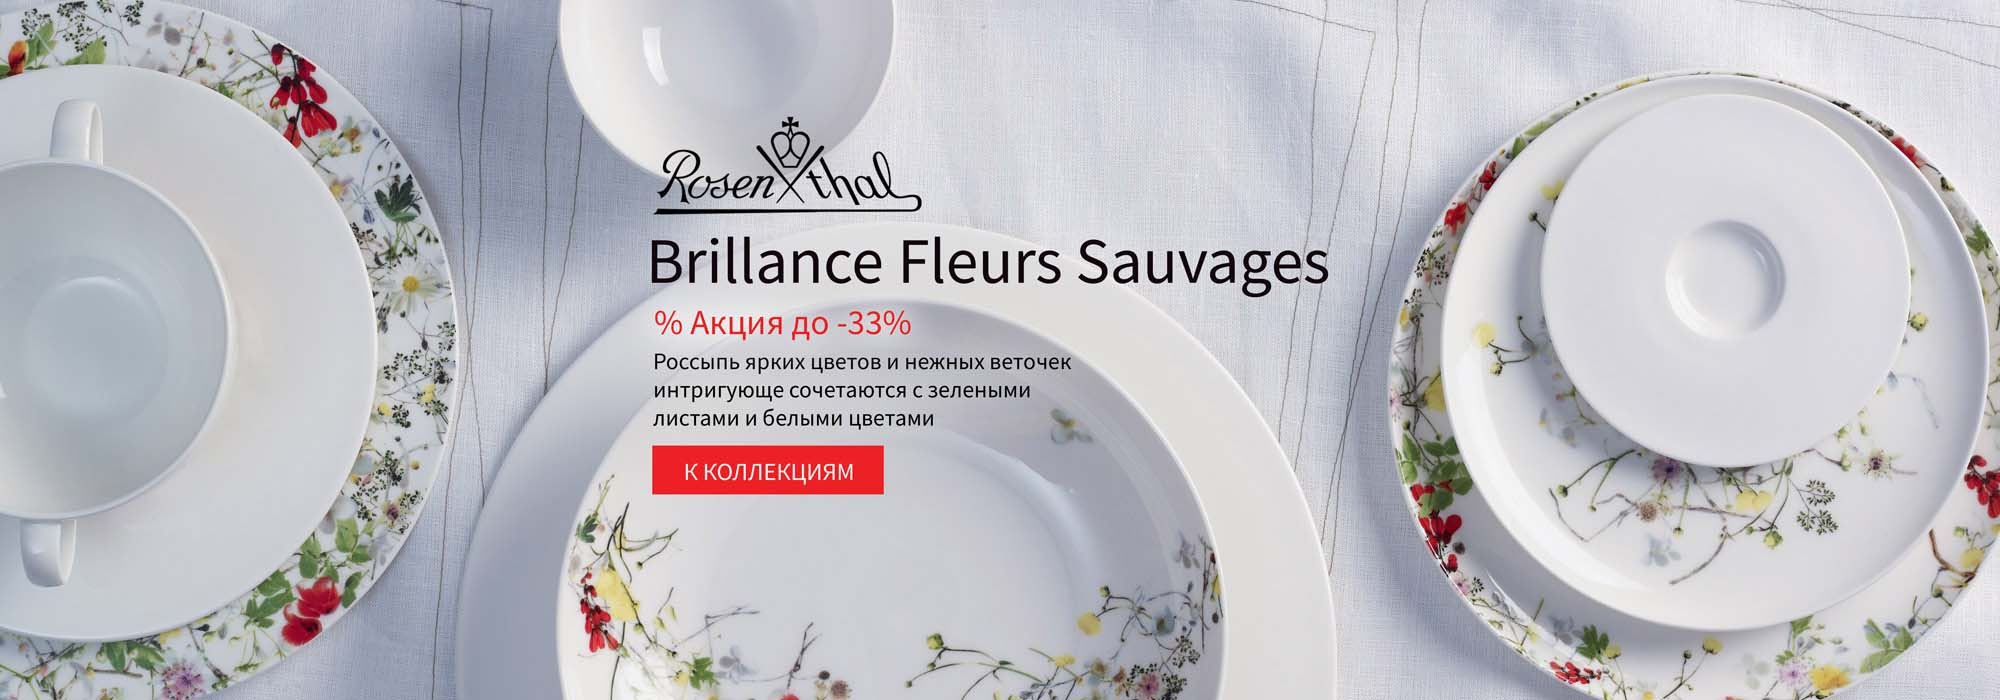 Rosenthal Selection Brillance Fleurs Sauvages